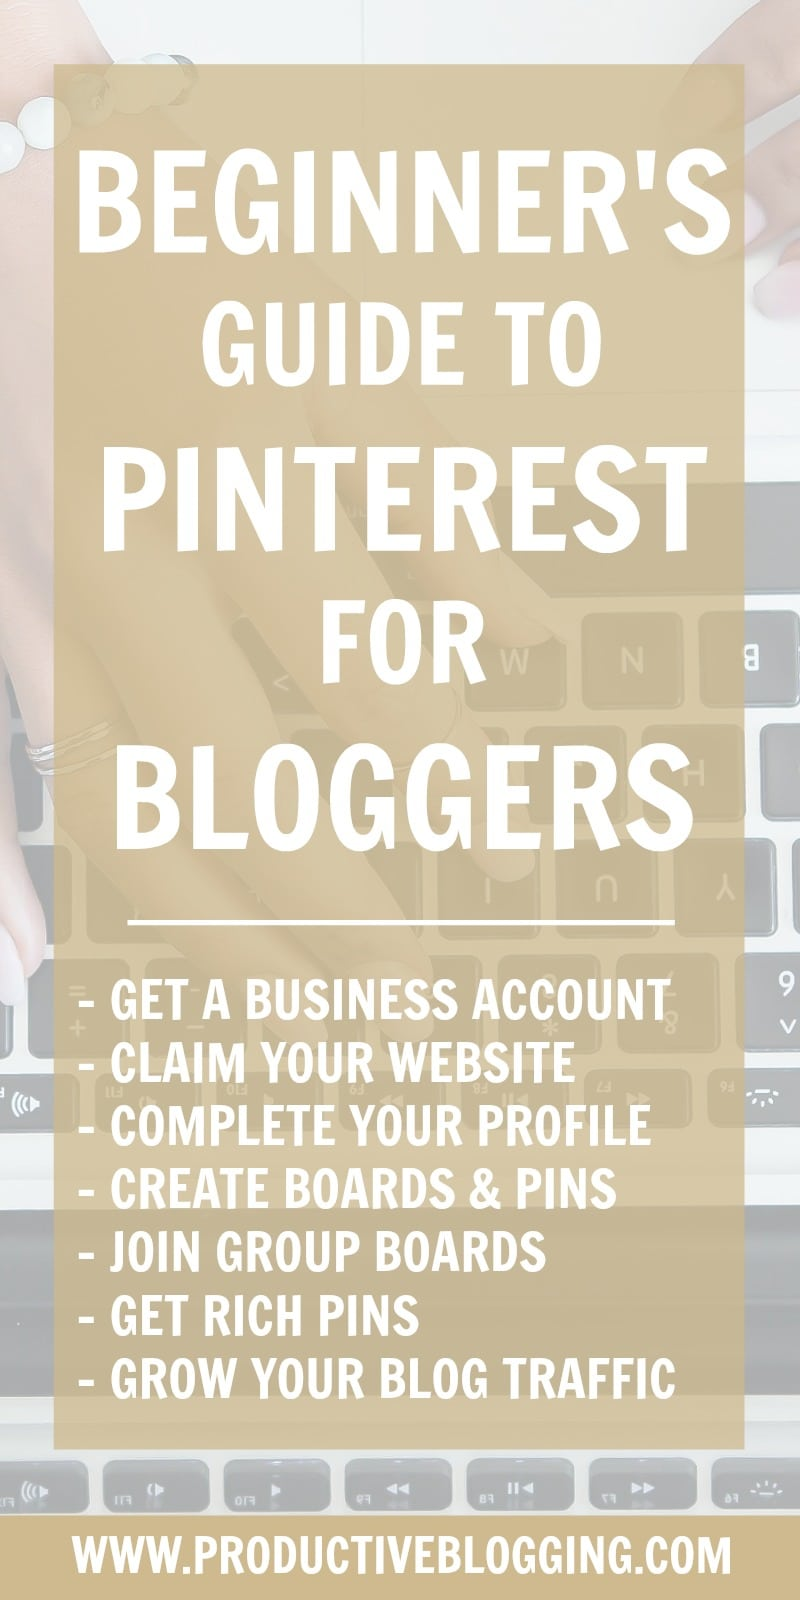 Pinterest is a great way to drive traffic to your blog. Unsure where to start? I'll take you step by step through getting started and setting yourself up for success in my Beginner's guide to Pinterest for Bloggers. #pinterest #pinteresttips #pinterestguide #pinterestforbeginners #beginnersguidetopinterest #beginnersguide #pinterestforbloggers #blogging #bloggers #bloggingtips #growyourblog #blogtraffic #increaseblogtraffic #productiveblogging